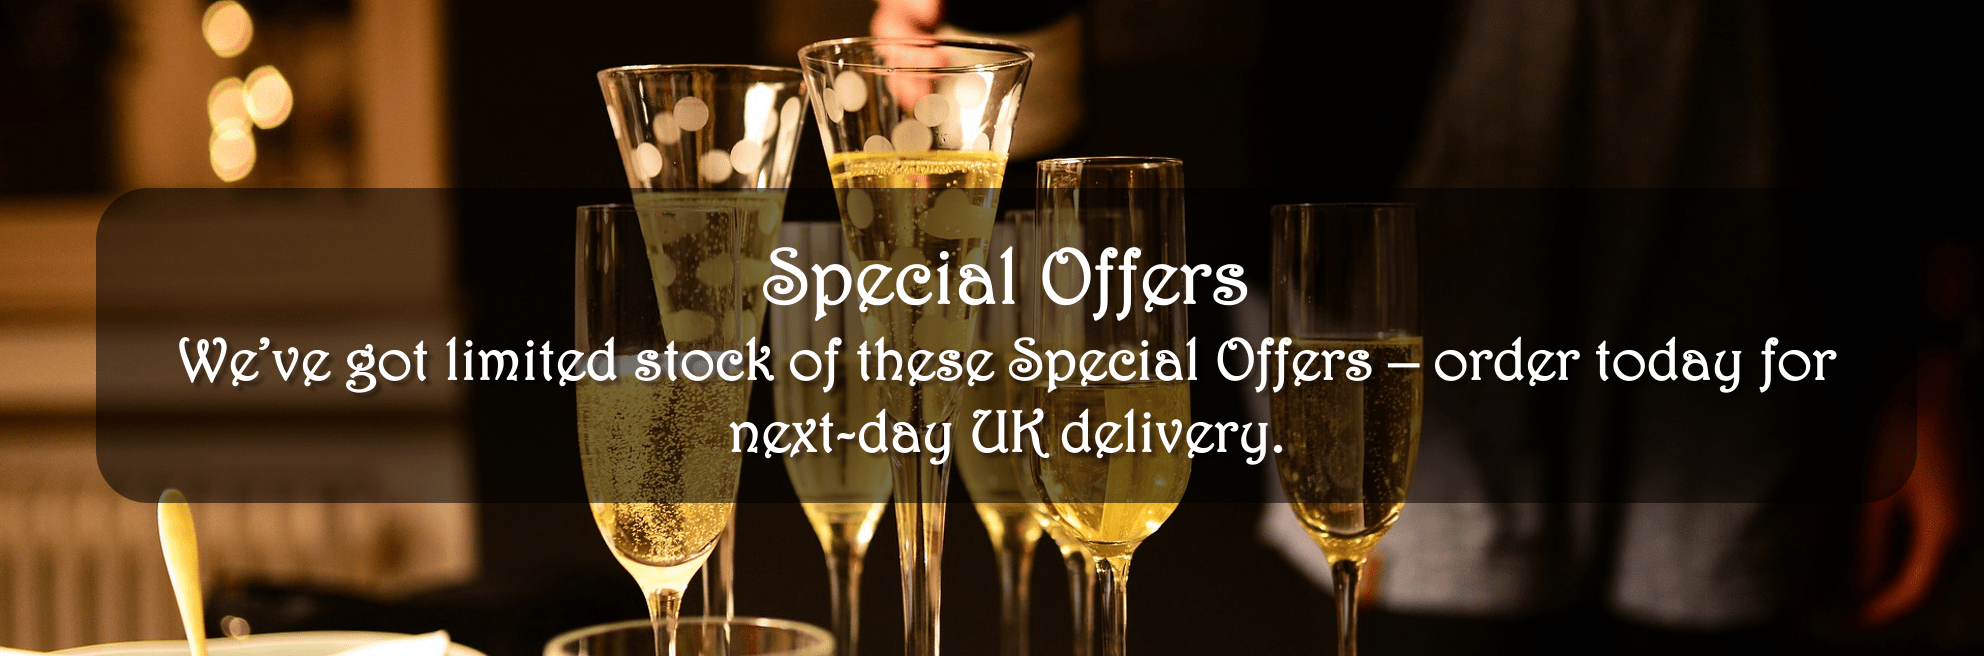 Champagne One Special Offers - next day UK delivery